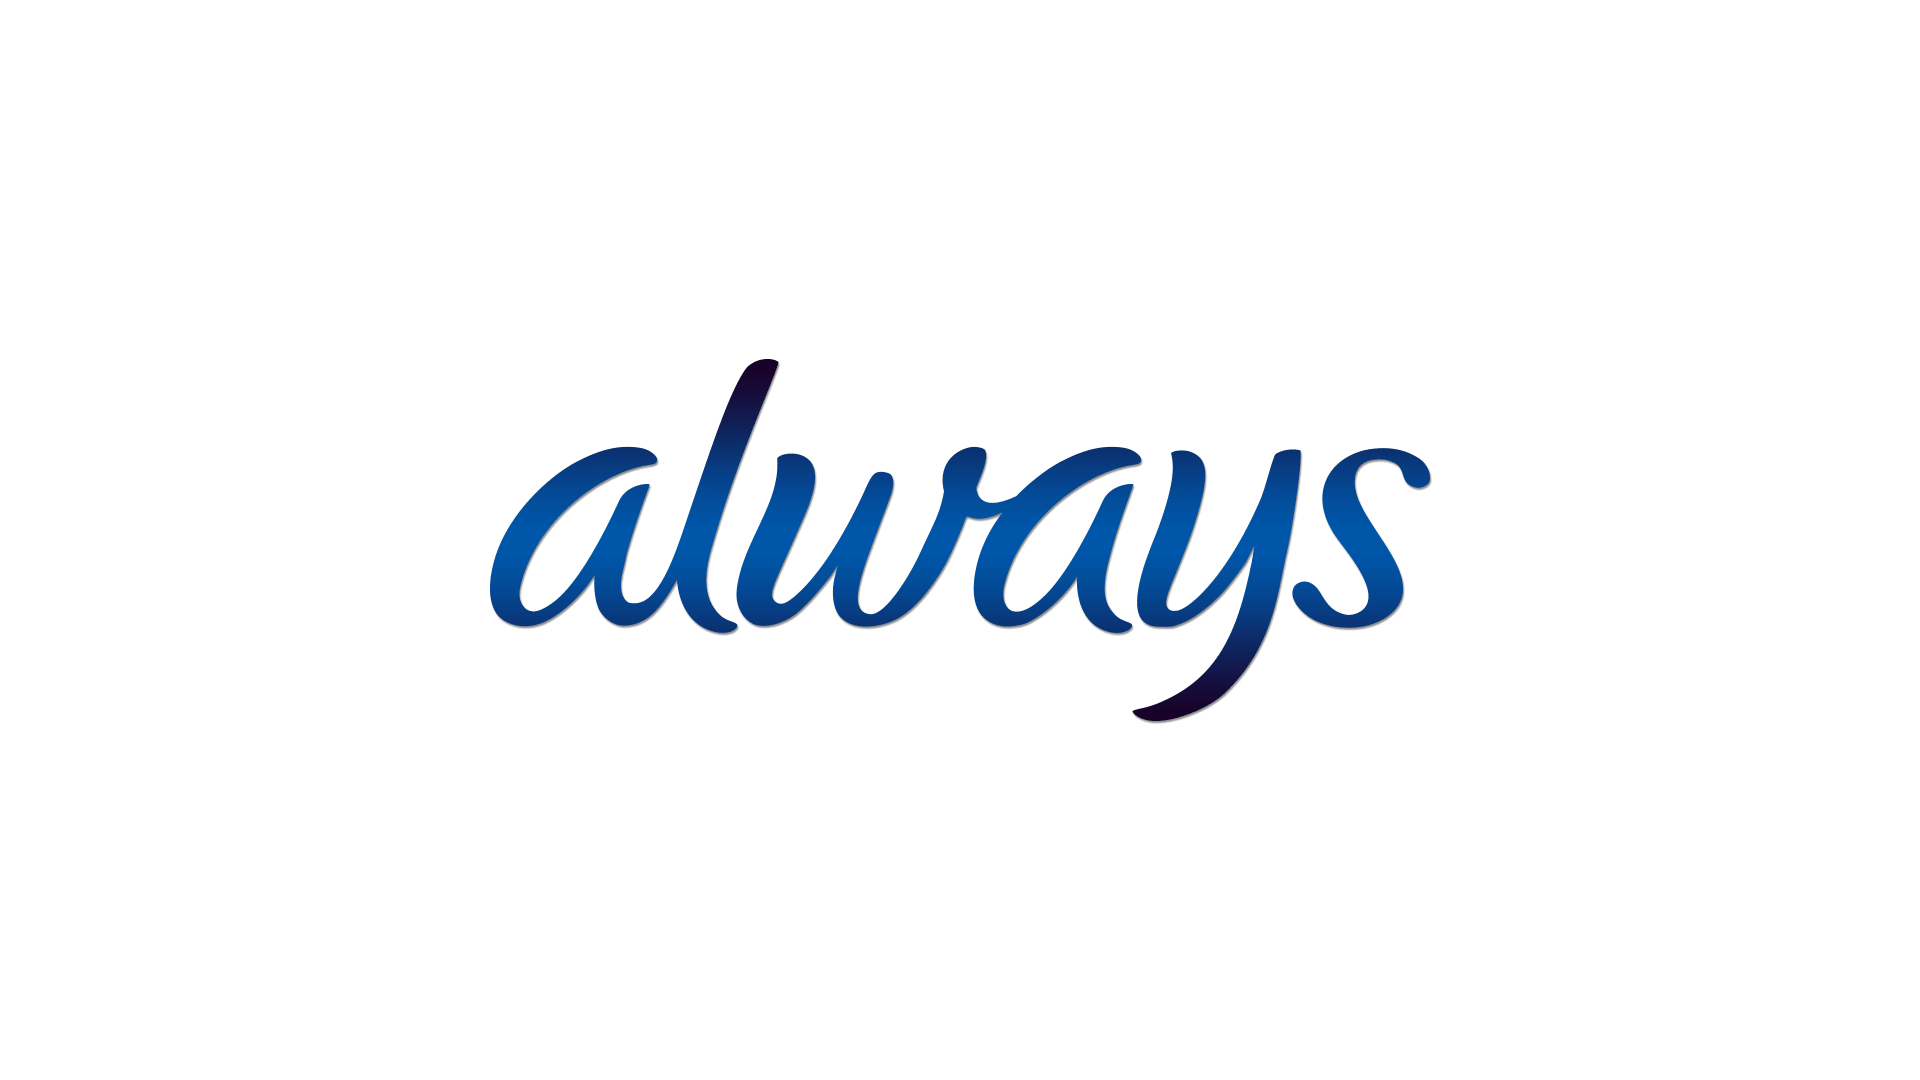 Always logo photo